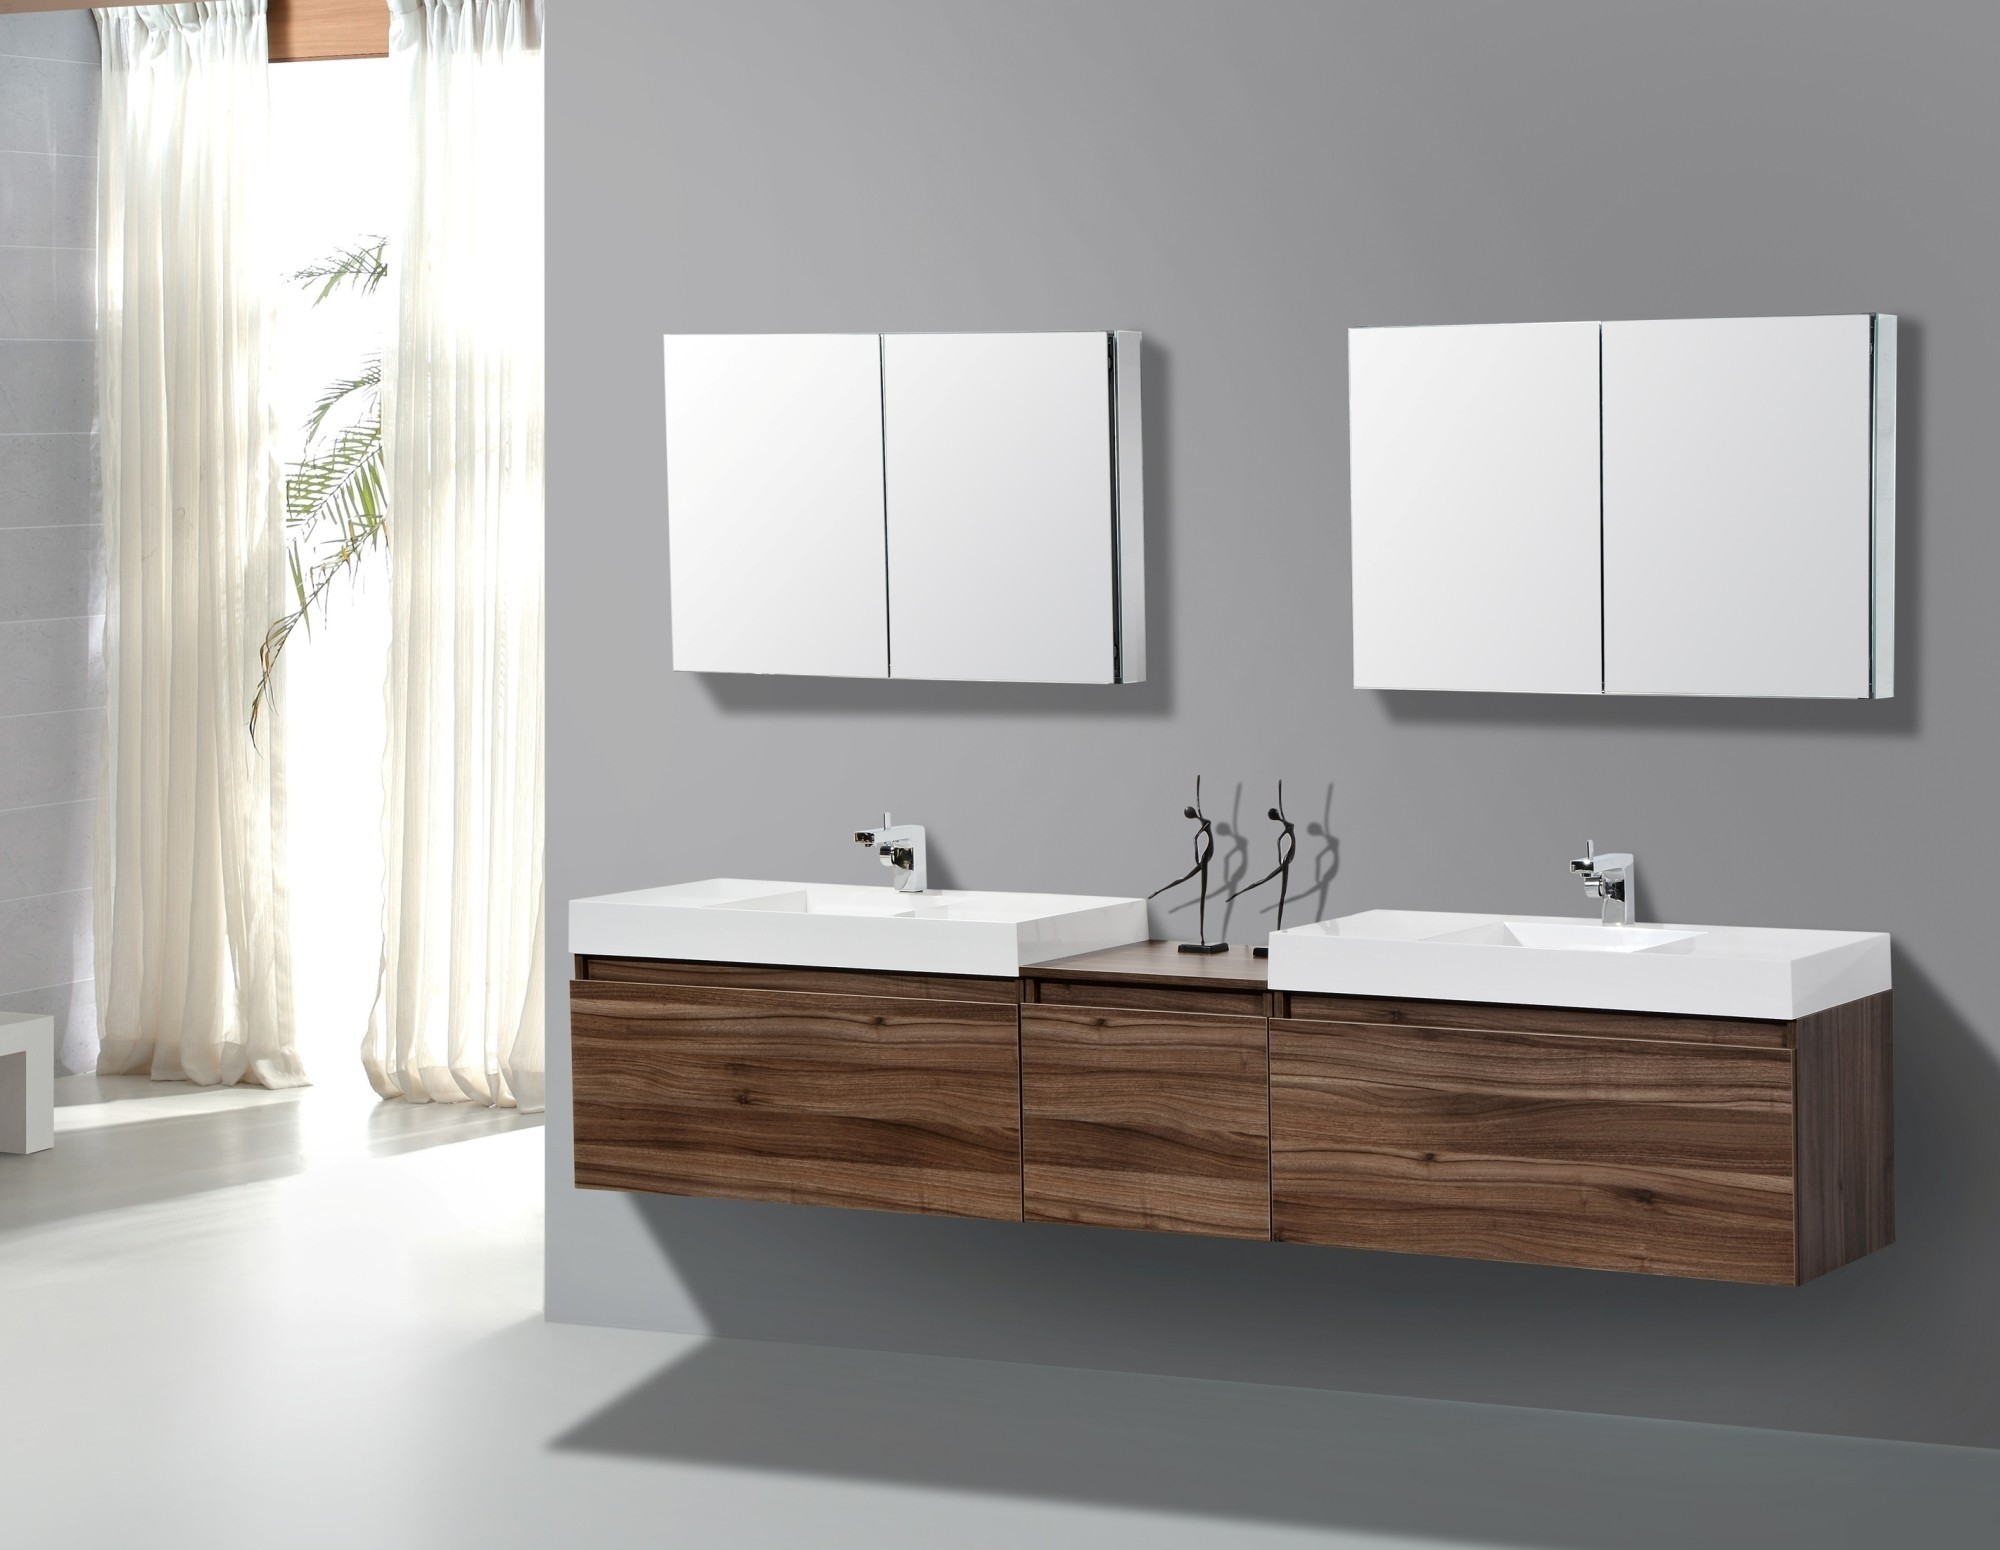 Floating Bathroom Vanity Wonderful Vanity Floating Bathroom Sink Modern Bathroom Vanity Table Portrait